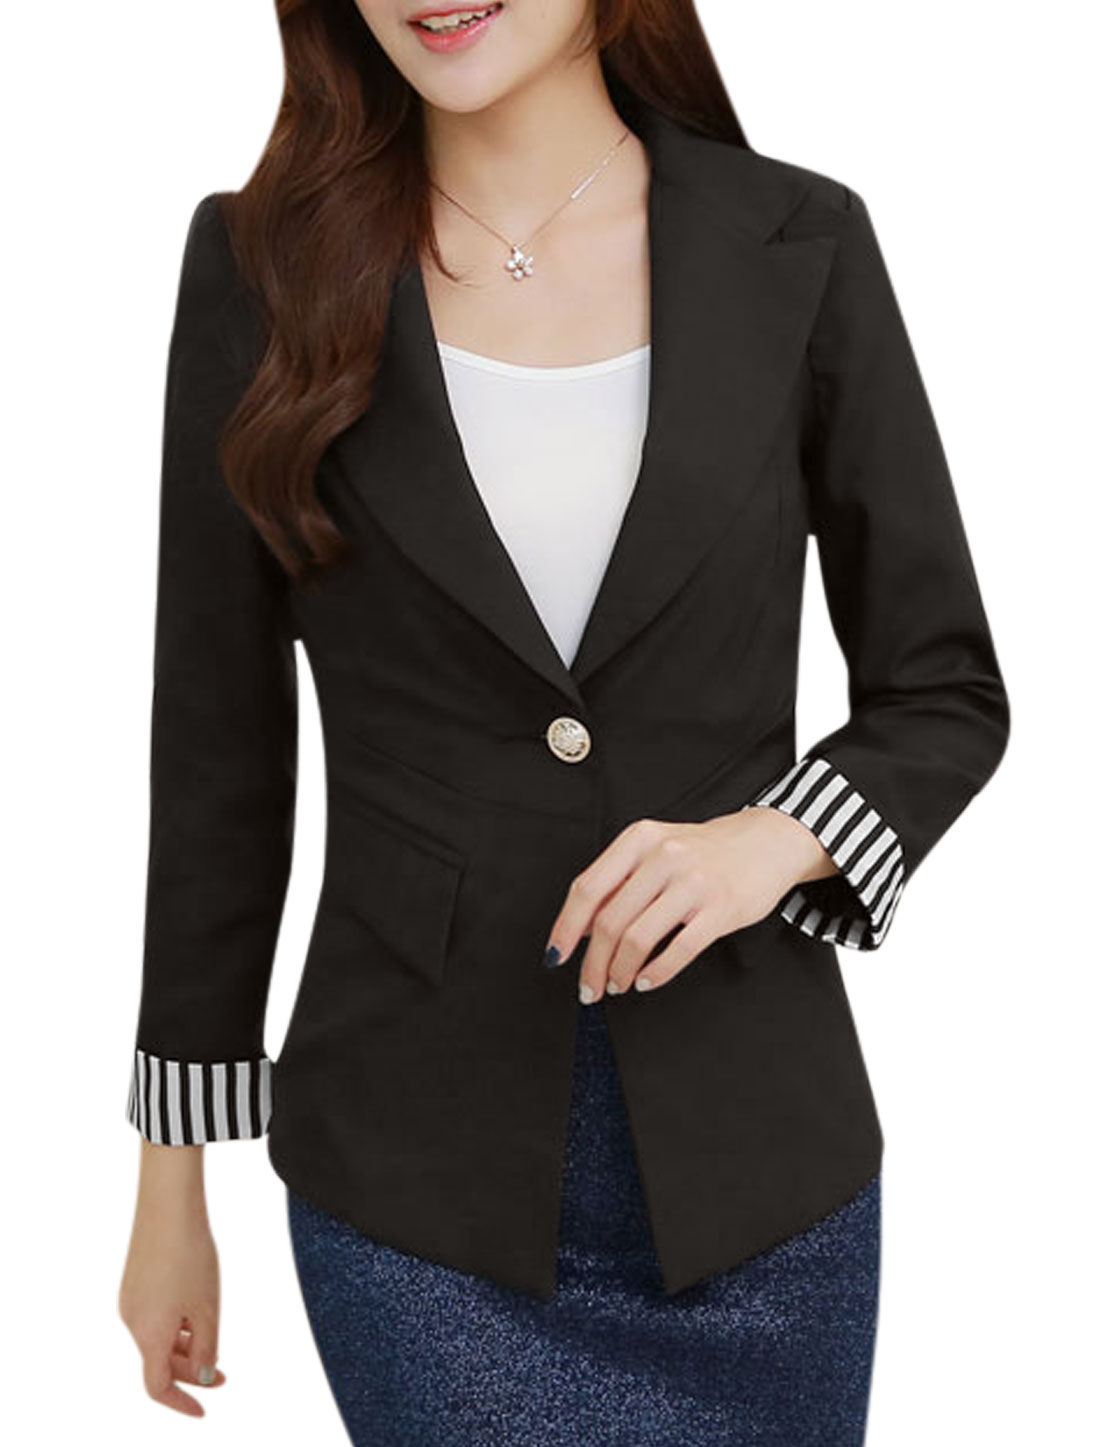 Women Notched Lapel Long Sleeve One Button Blazer Jacket Black L